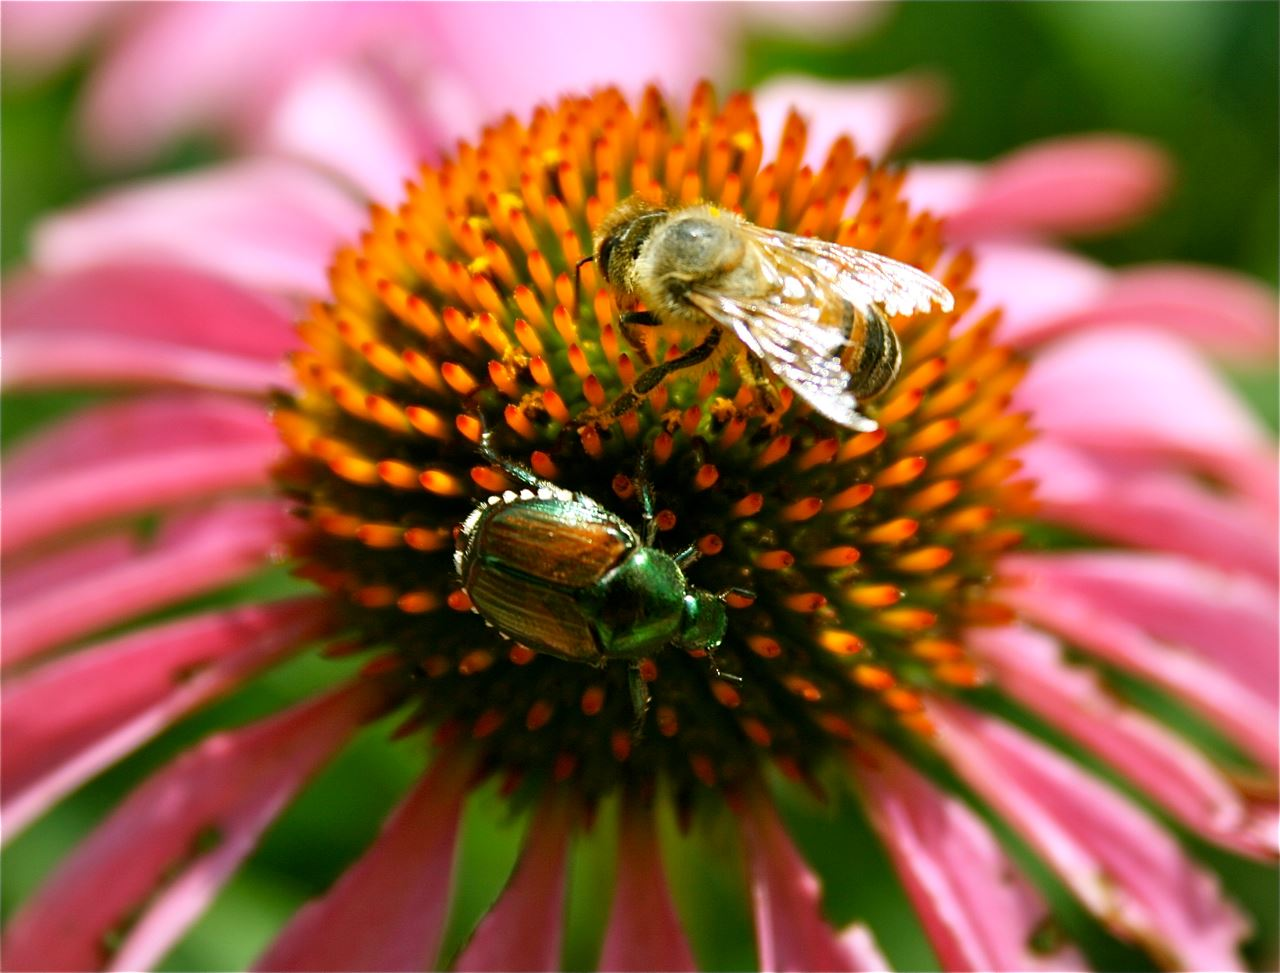 Beetle and Bee on Flower, Rebecca Garris